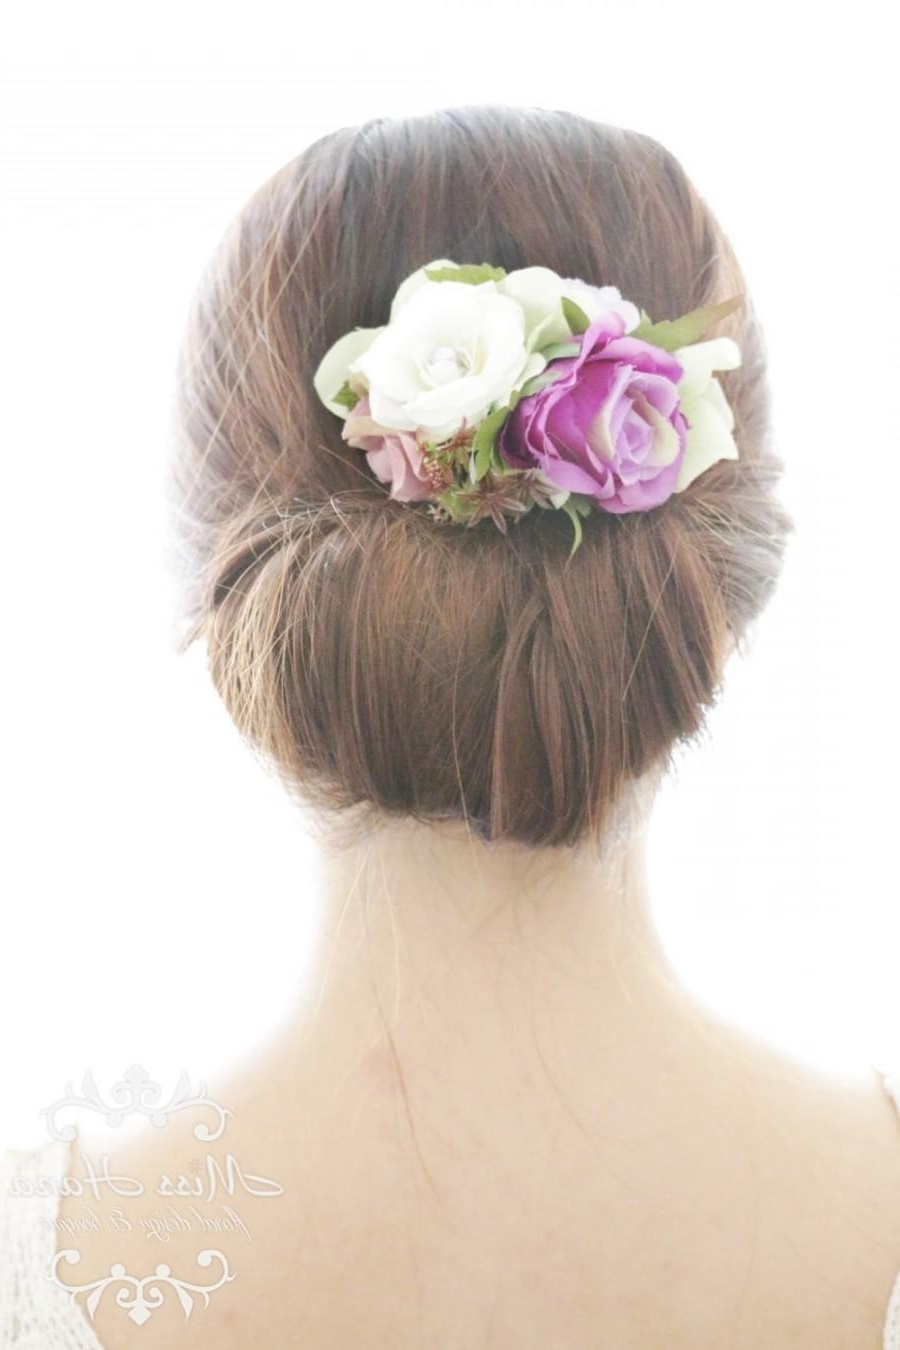 Fashionable Outdoor Wedding Hairstyles For Bridesmaids Pertaining To Bridal Hair Accessory, White Purple Rose, Bridal Hair Comb Hairpiece (View 10 of 15)